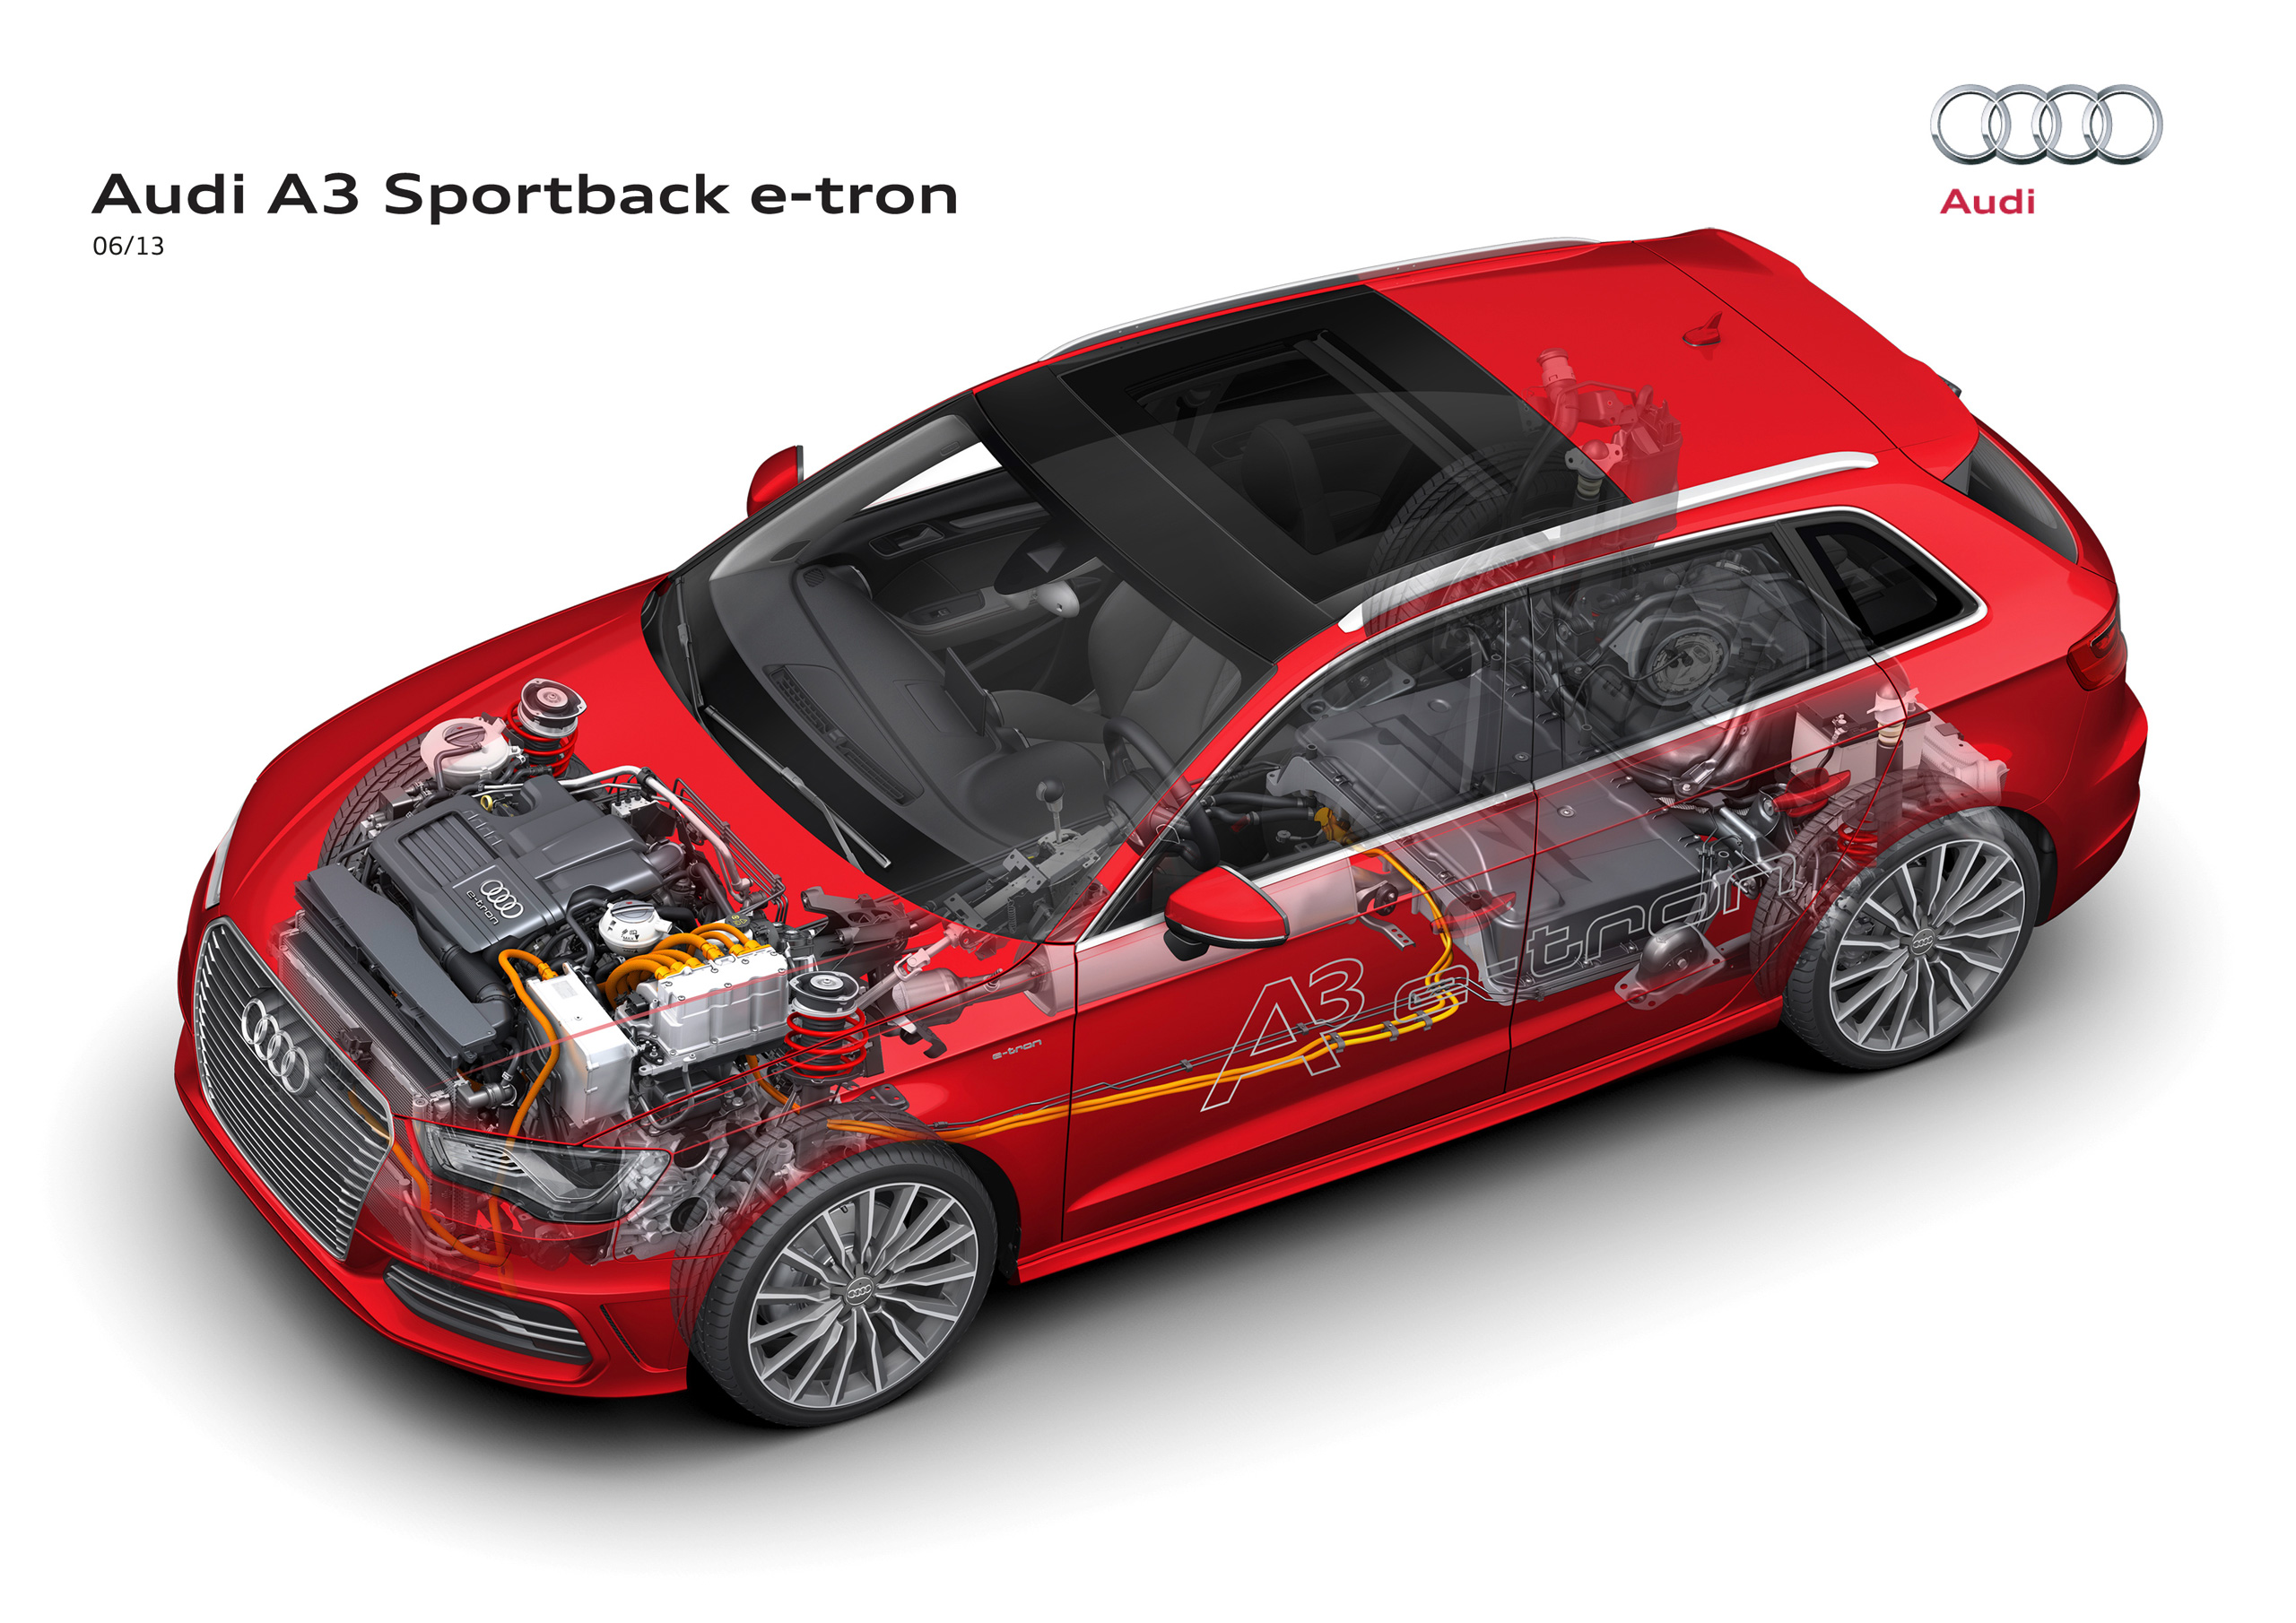 audi a3 sportback e tron enters production late 2013. Black Bedroom Furniture Sets. Home Design Ideas